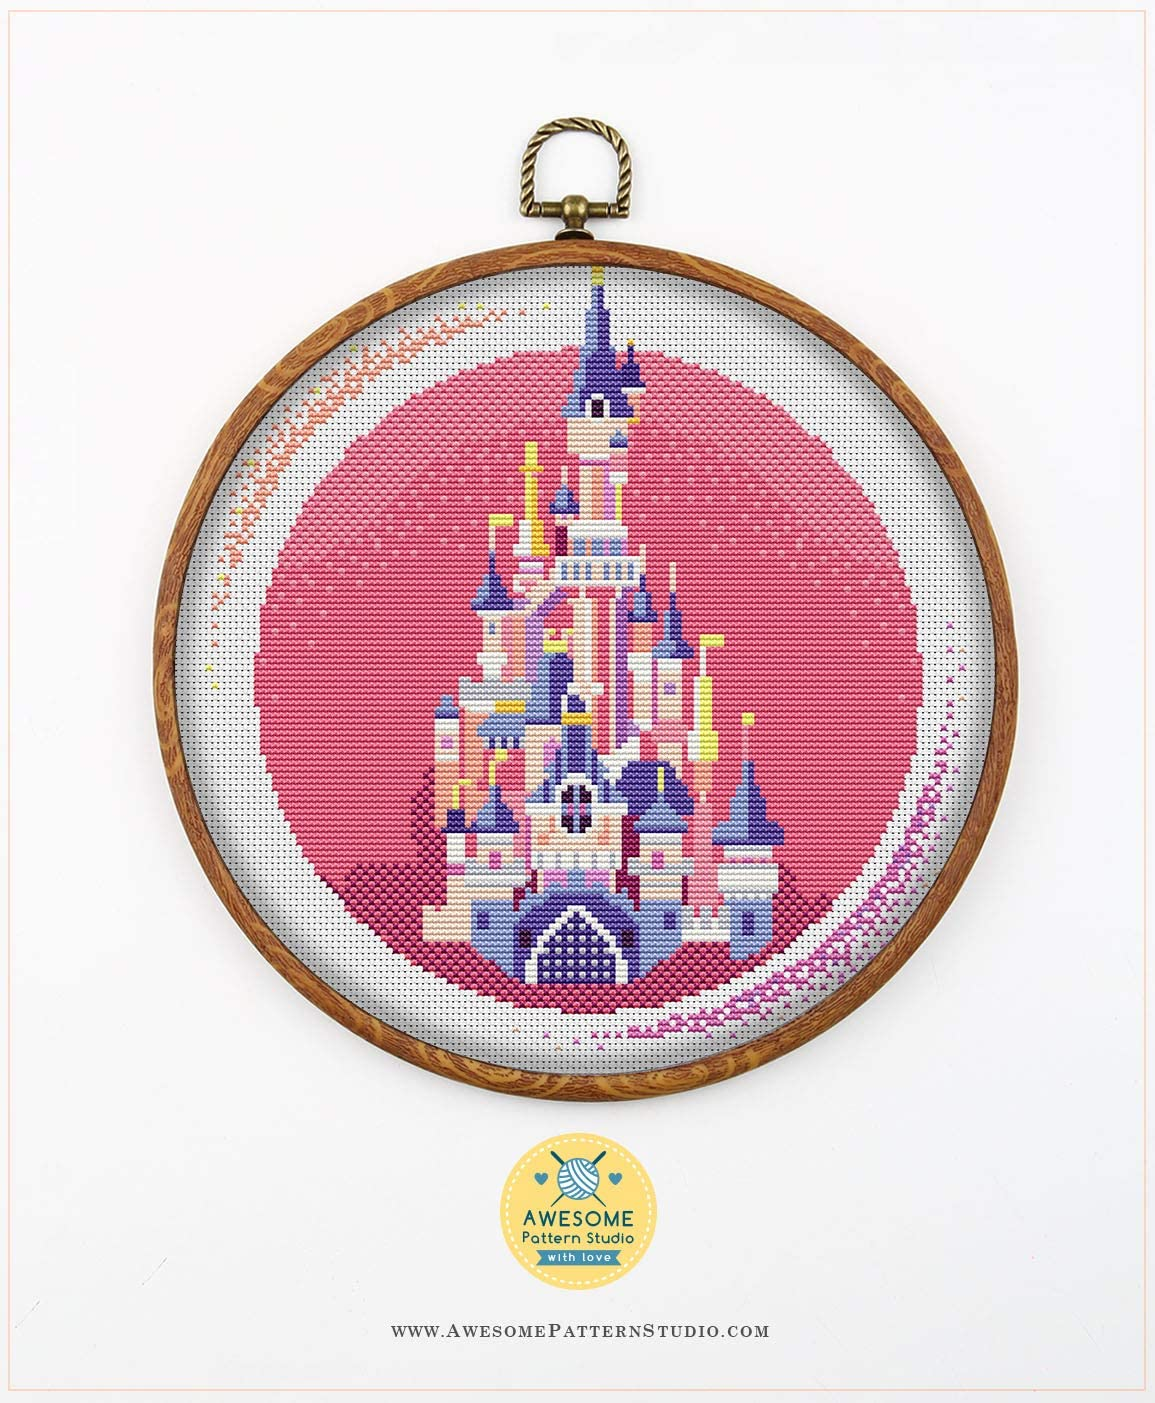 Paris Disney Castle K809 Counted Cross Stitch Pattern Needles 4 Printed Schemes Inside No Fabric Threads Embroidery Pattern Hoops